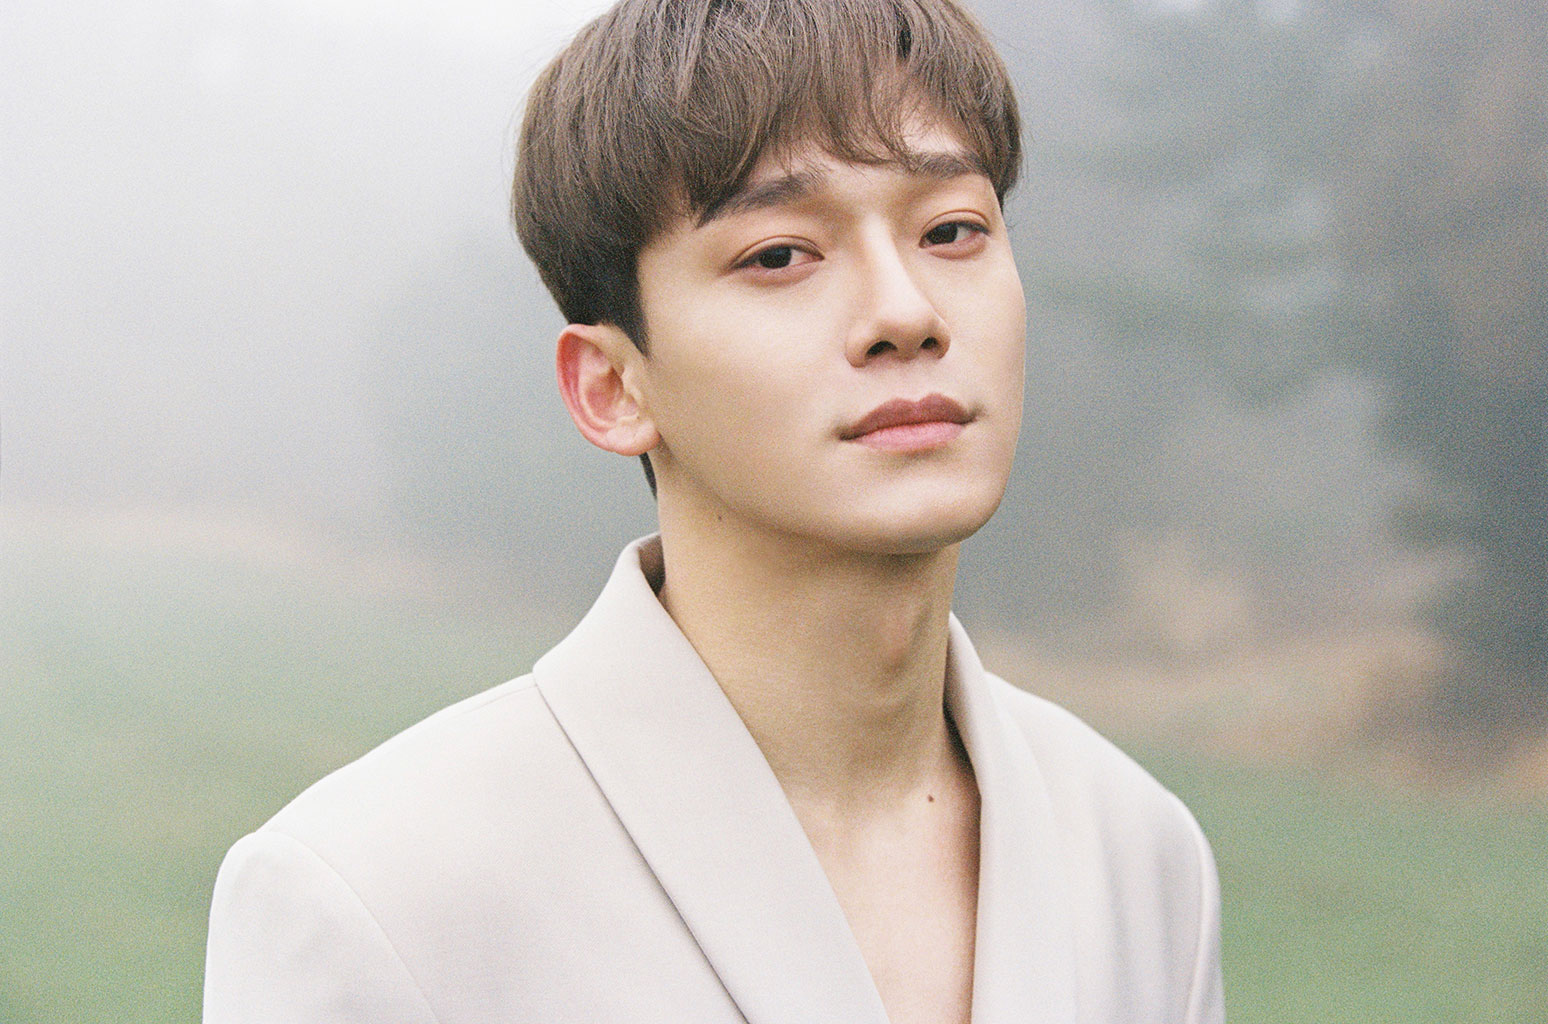 CHEN-photo-2019-billboard-1548